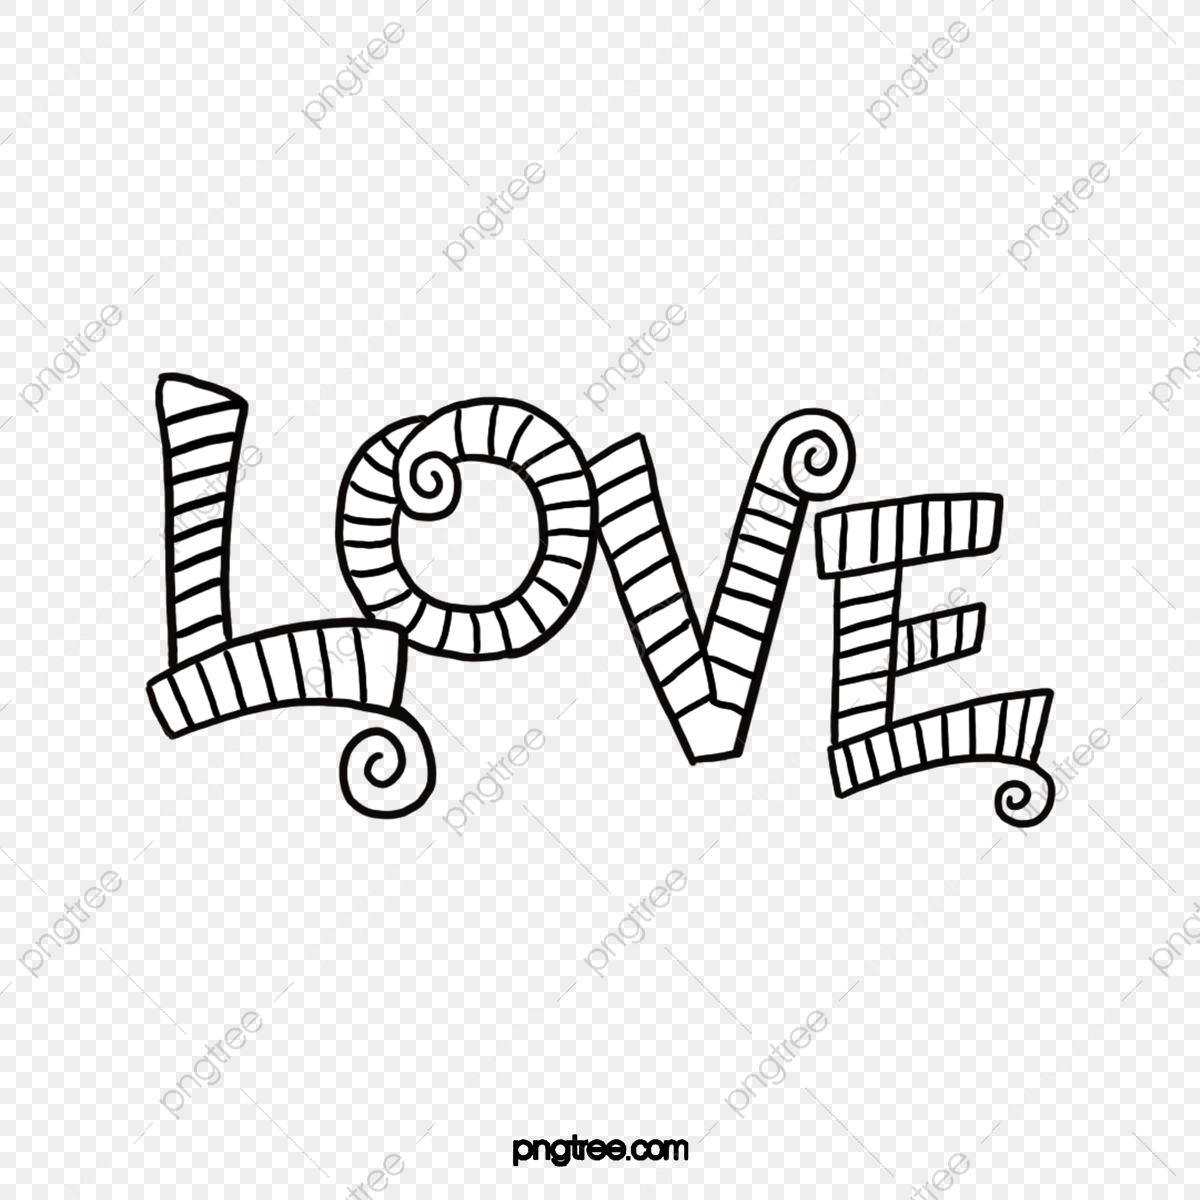 Hand Drawn Line Drawing Black And White English Love Letter